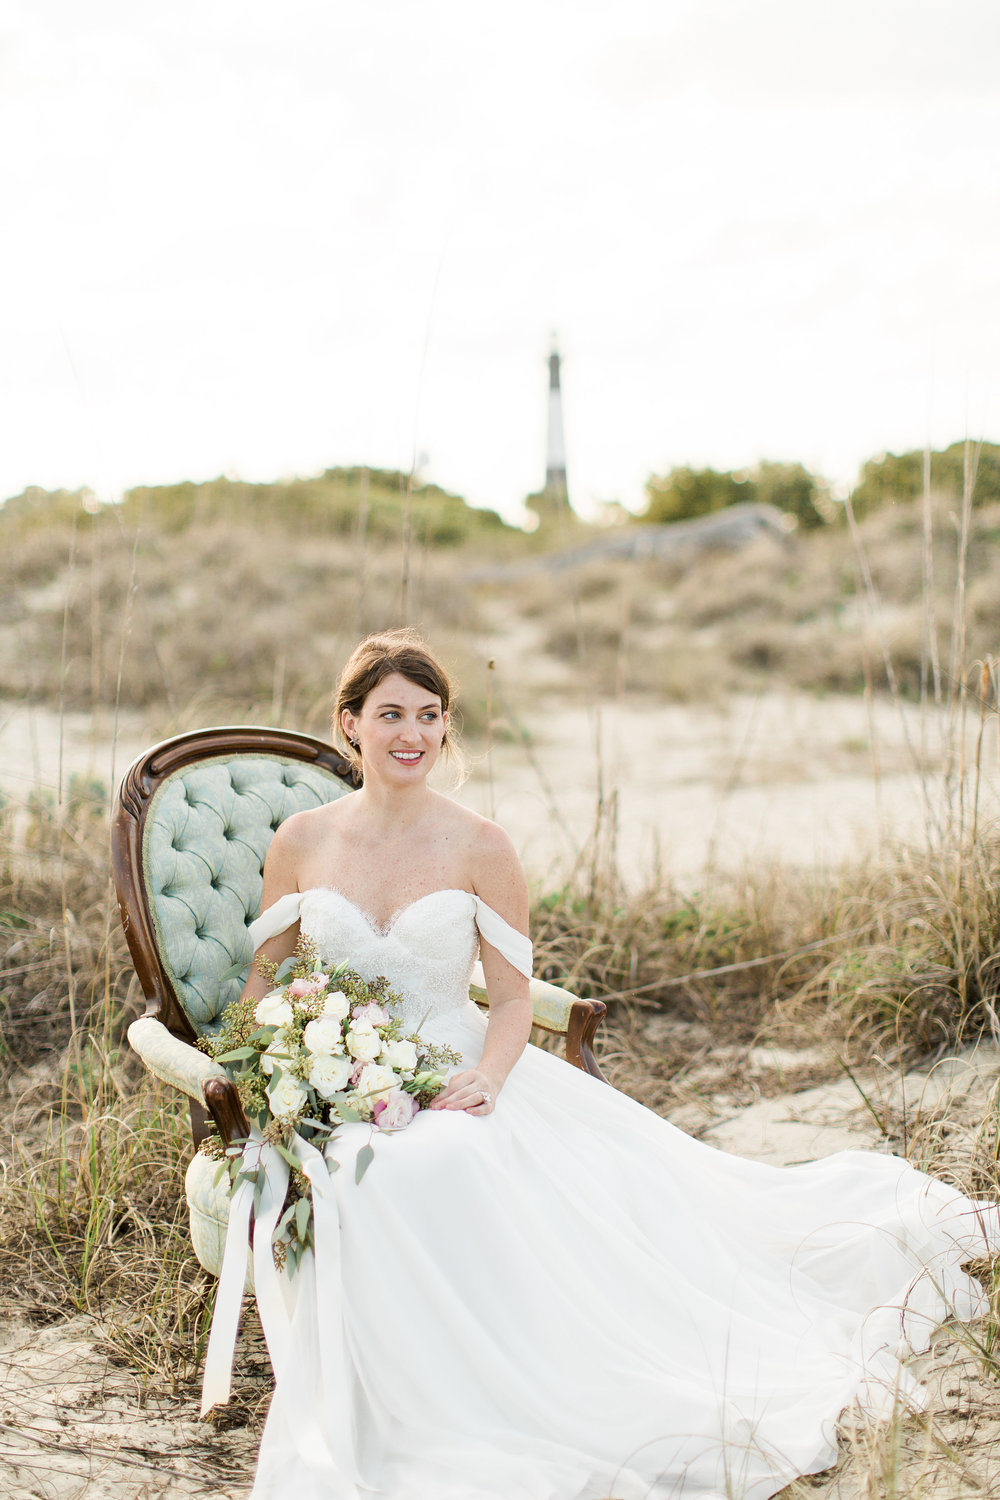 marianne-lucille-photography-jleslie-decor-tybee-wedding-sunset-wedding-beach-wedding-savannah-beach-wedding-sarah-seven-hayes-savannah-bridal-boutique-savannah-wedding-dresses-savannah-bridal-gowns-savannah-weddings-savannah-bridal-1.jpg